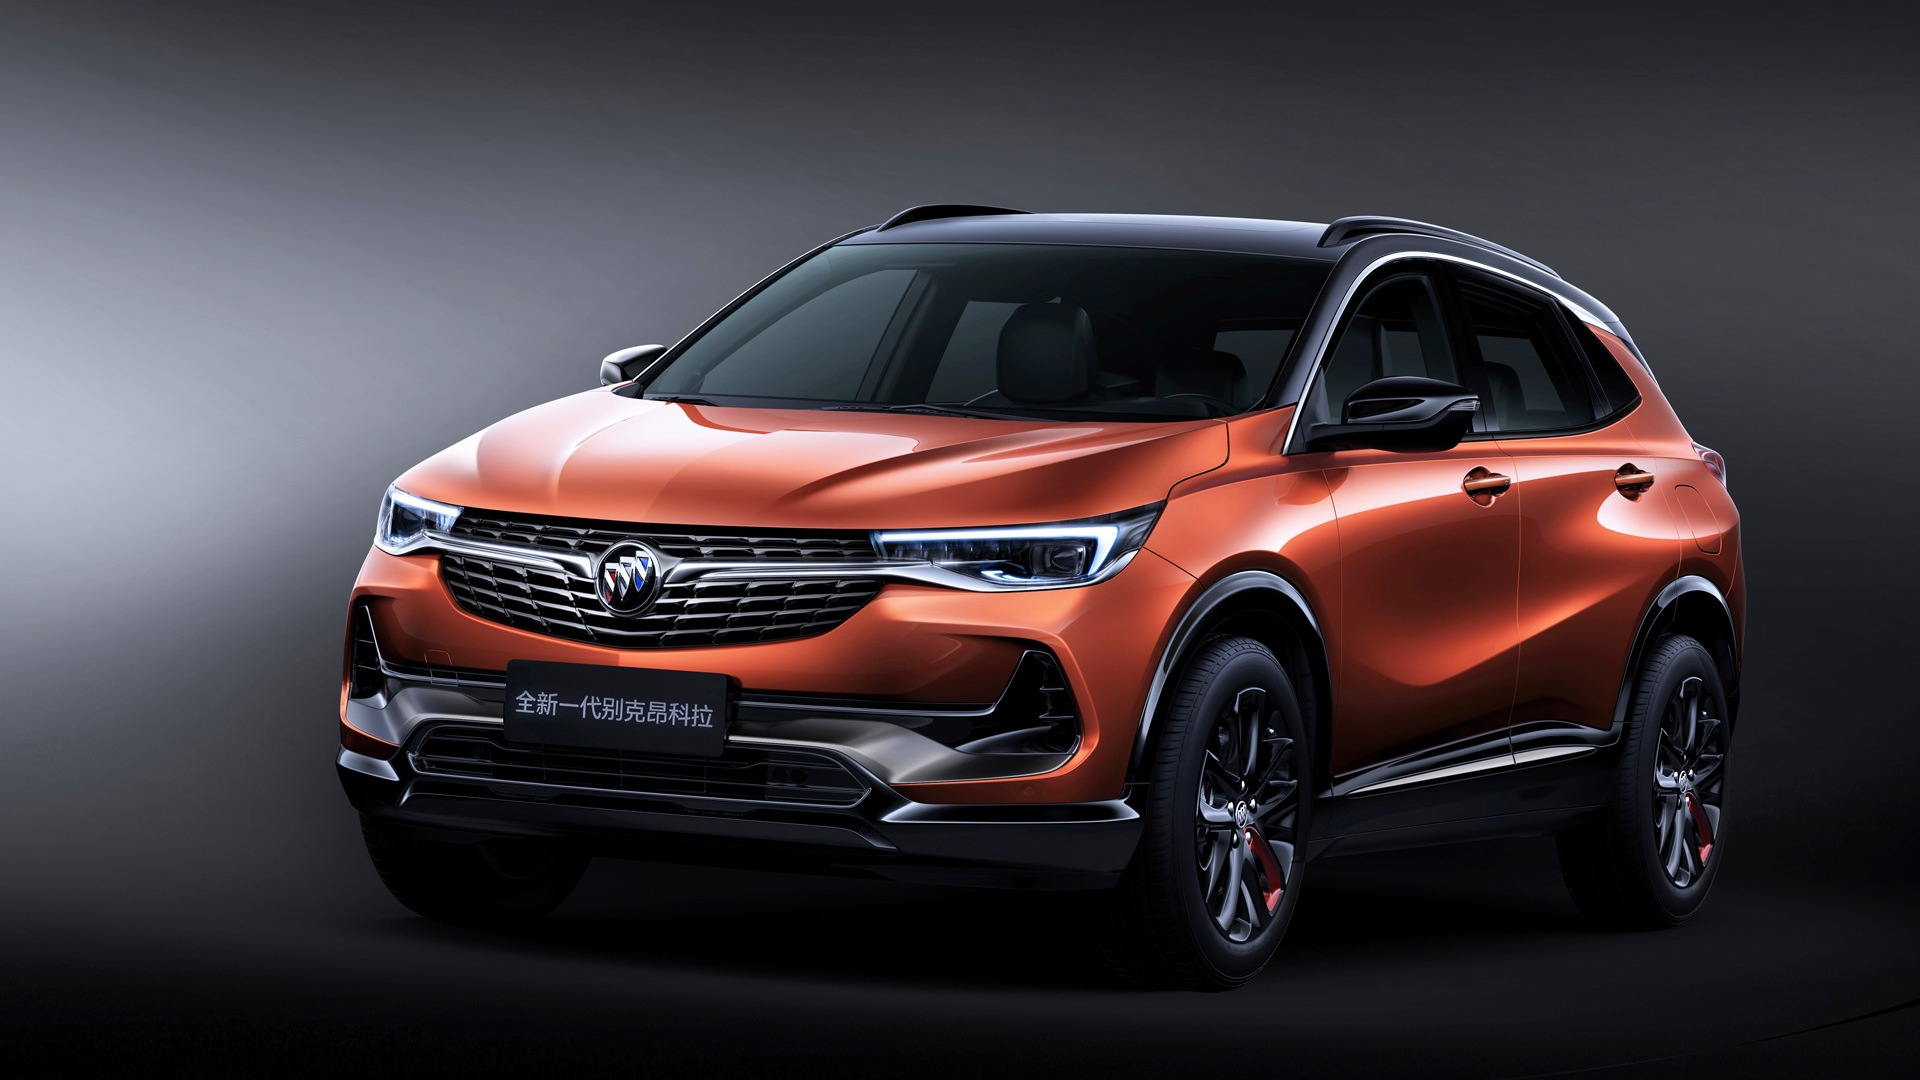 98 The New Buick Suv For 2020 History by New Buick Suv For 2020